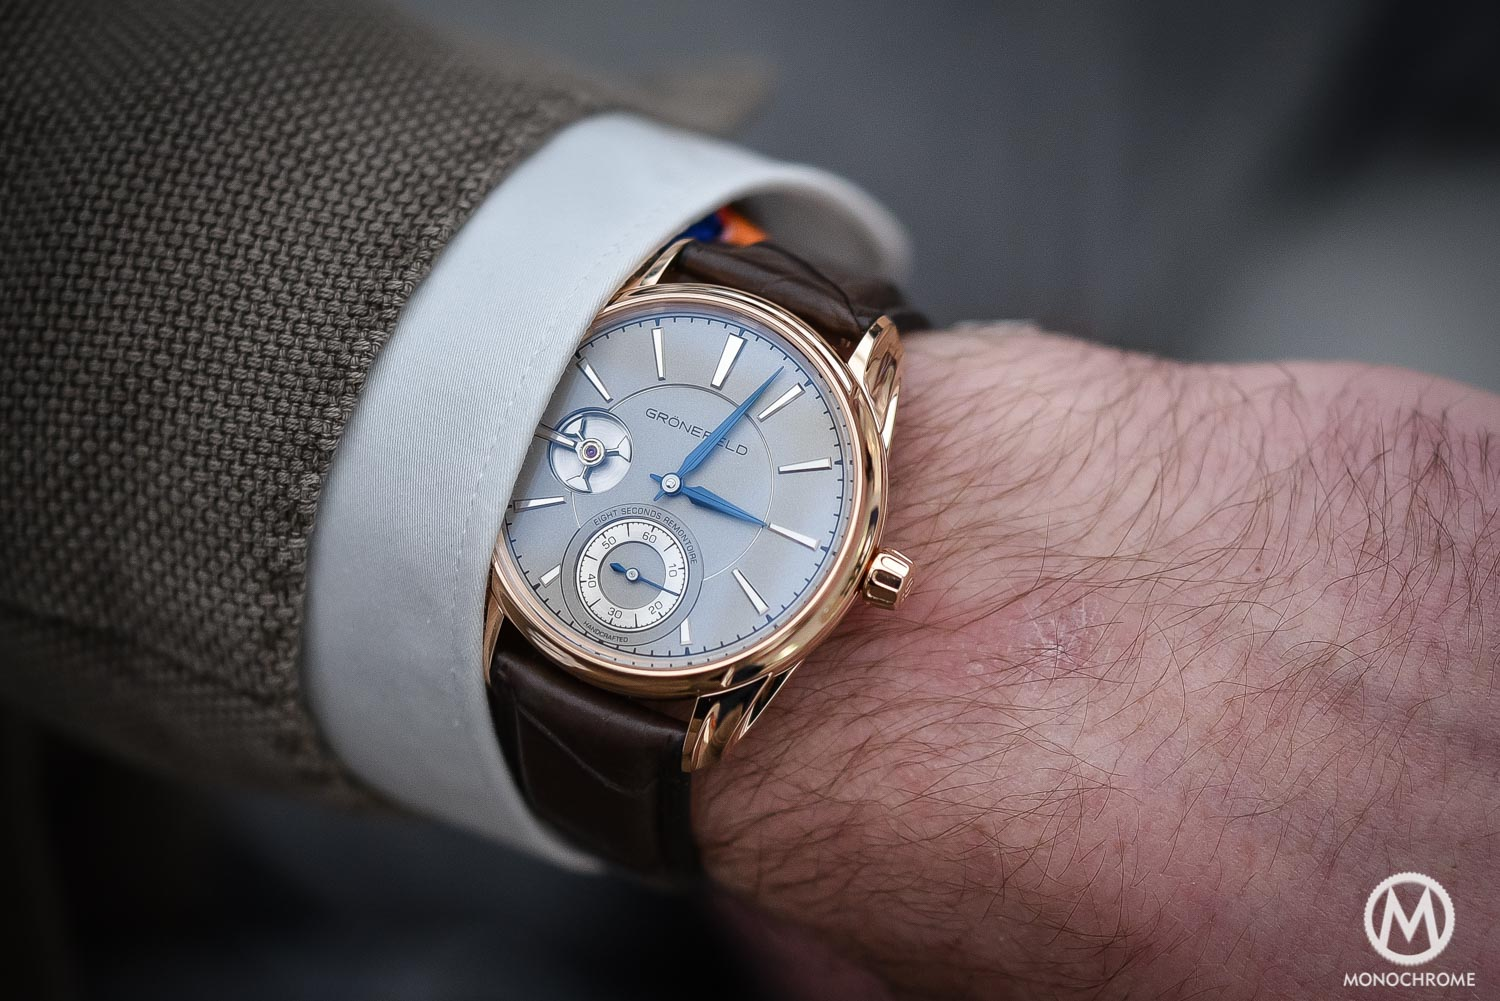 Top 5 Watches from Baselworld 2016 - Gronefeld 1941 Remontoire